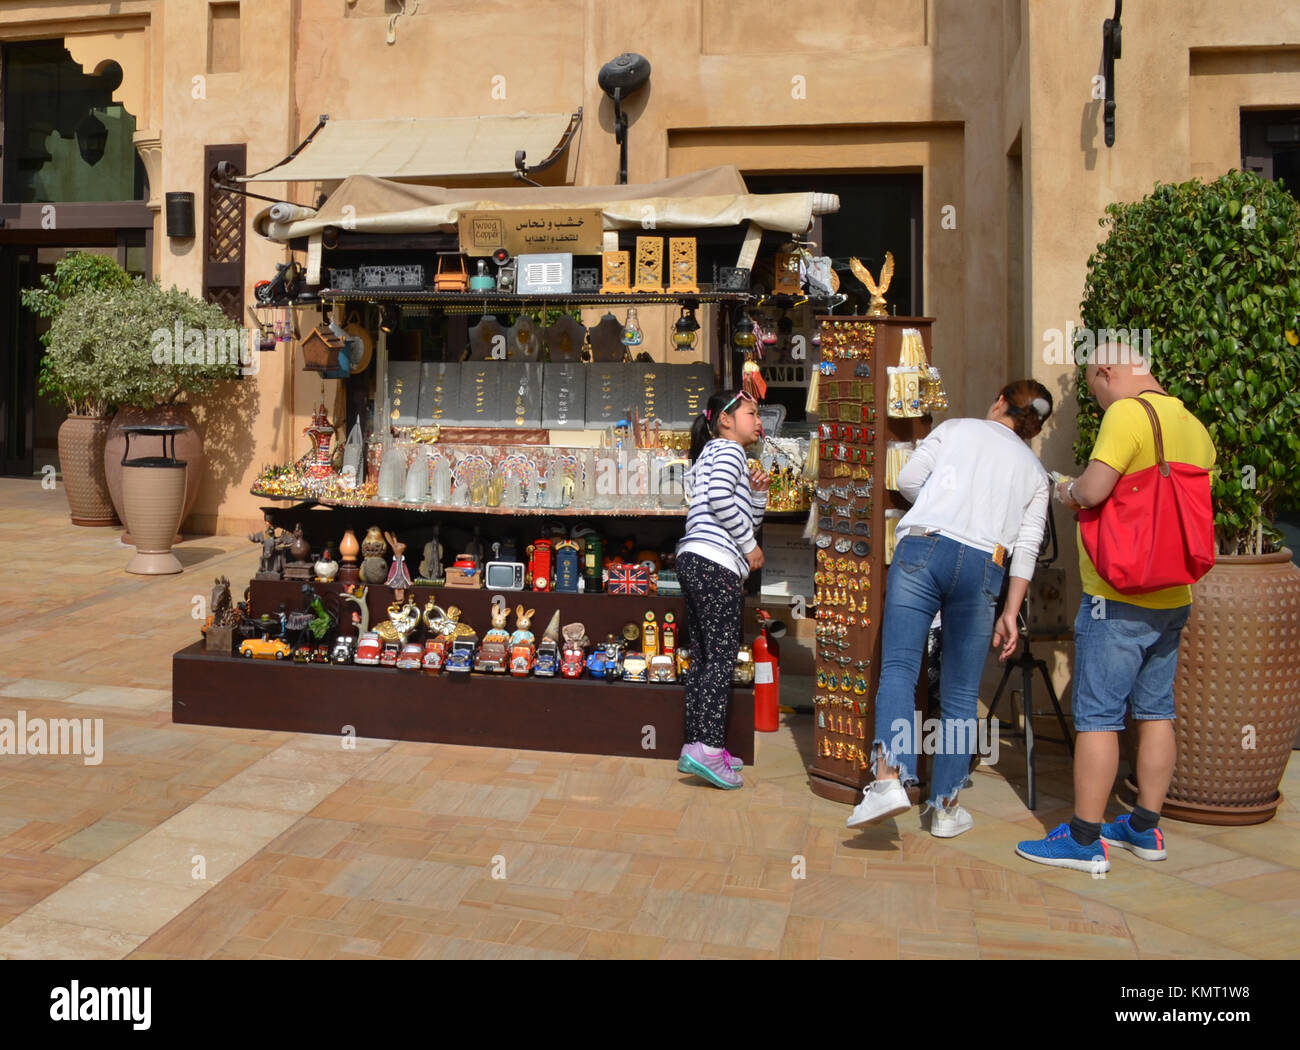 Family time shopping together for souvenirs in Dubai - Stock Image